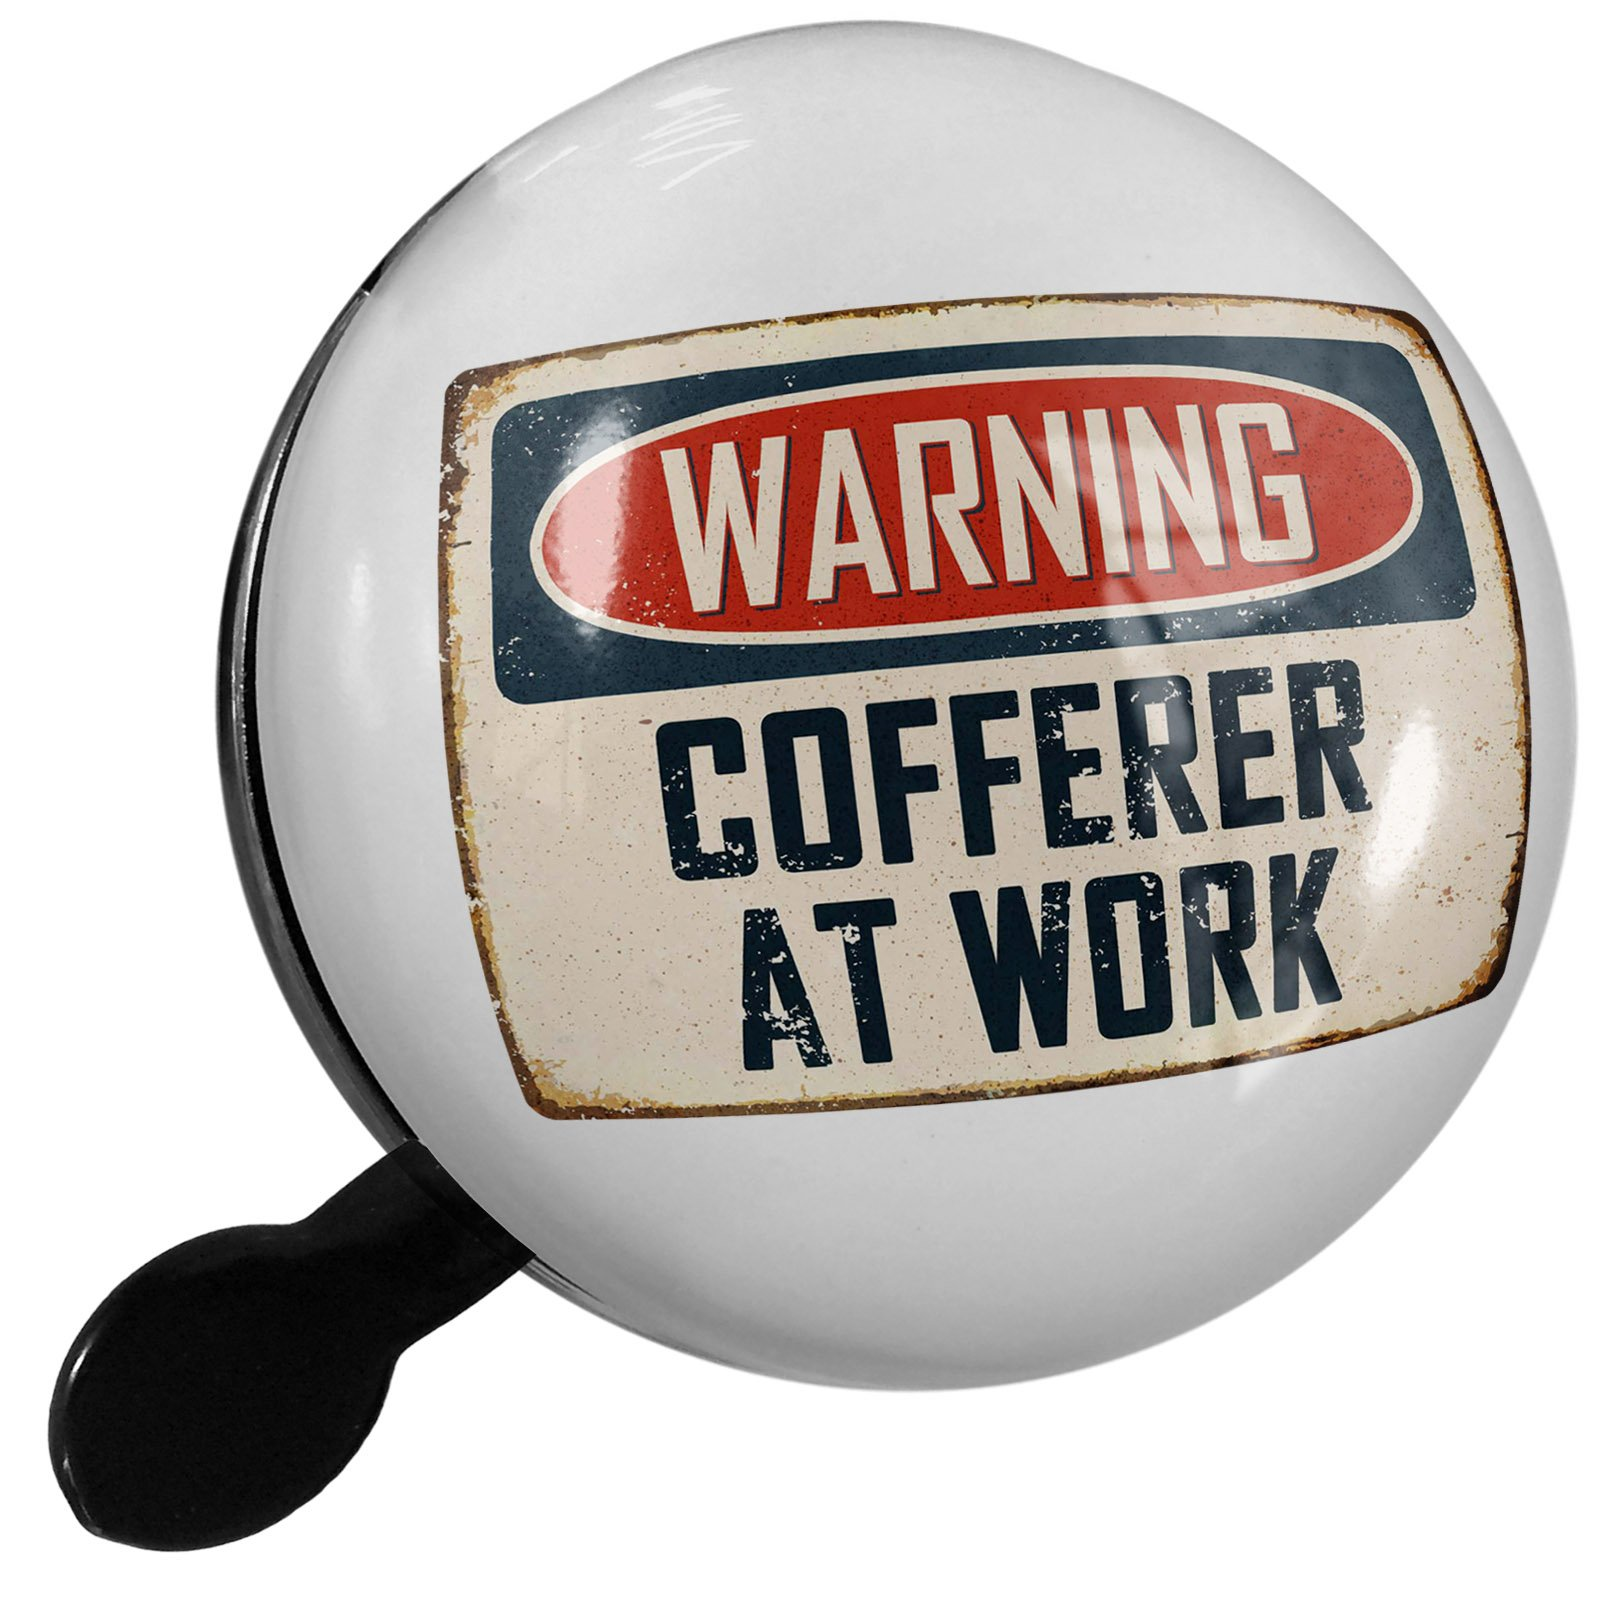 Small Bike Bell Warning Cofferer At Work Vintage Fun Job Sign - NEONBLOND